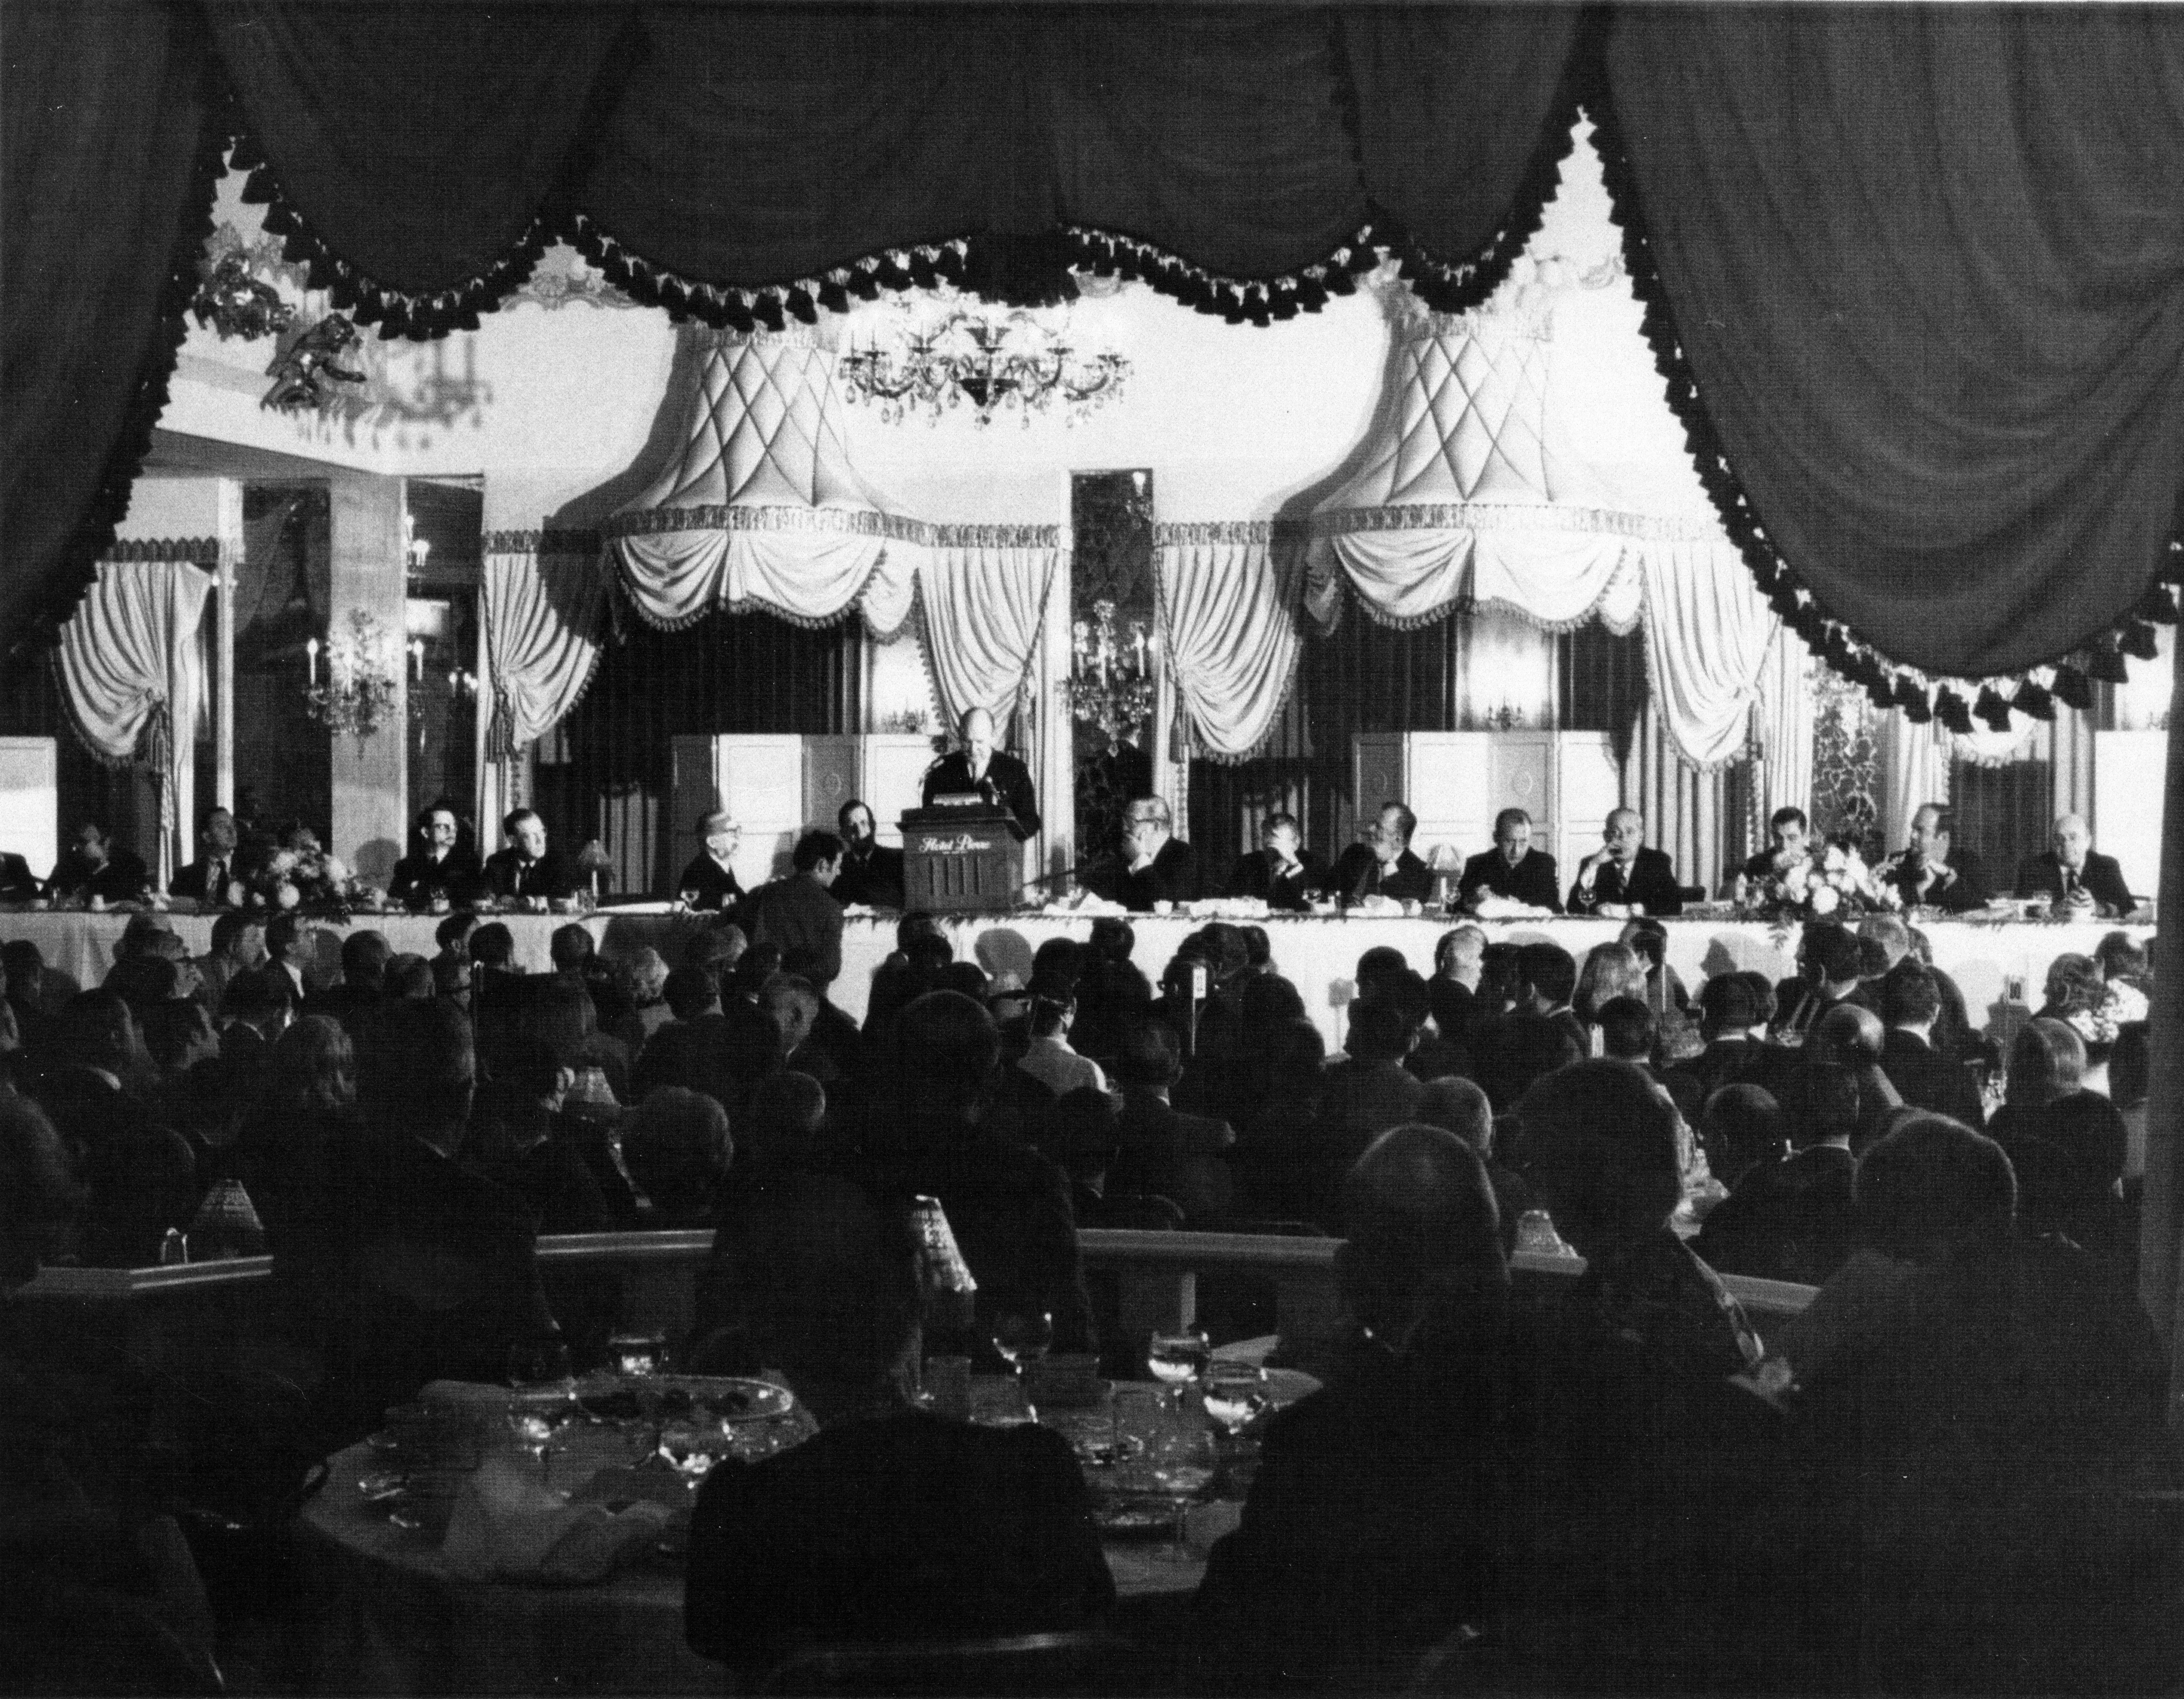 1941 Peabody Awards luncheon, George Foster Peabody Awards records, ms3000, Hargrett Rare Book and Manuscript Library, University of Georgia Libraries.